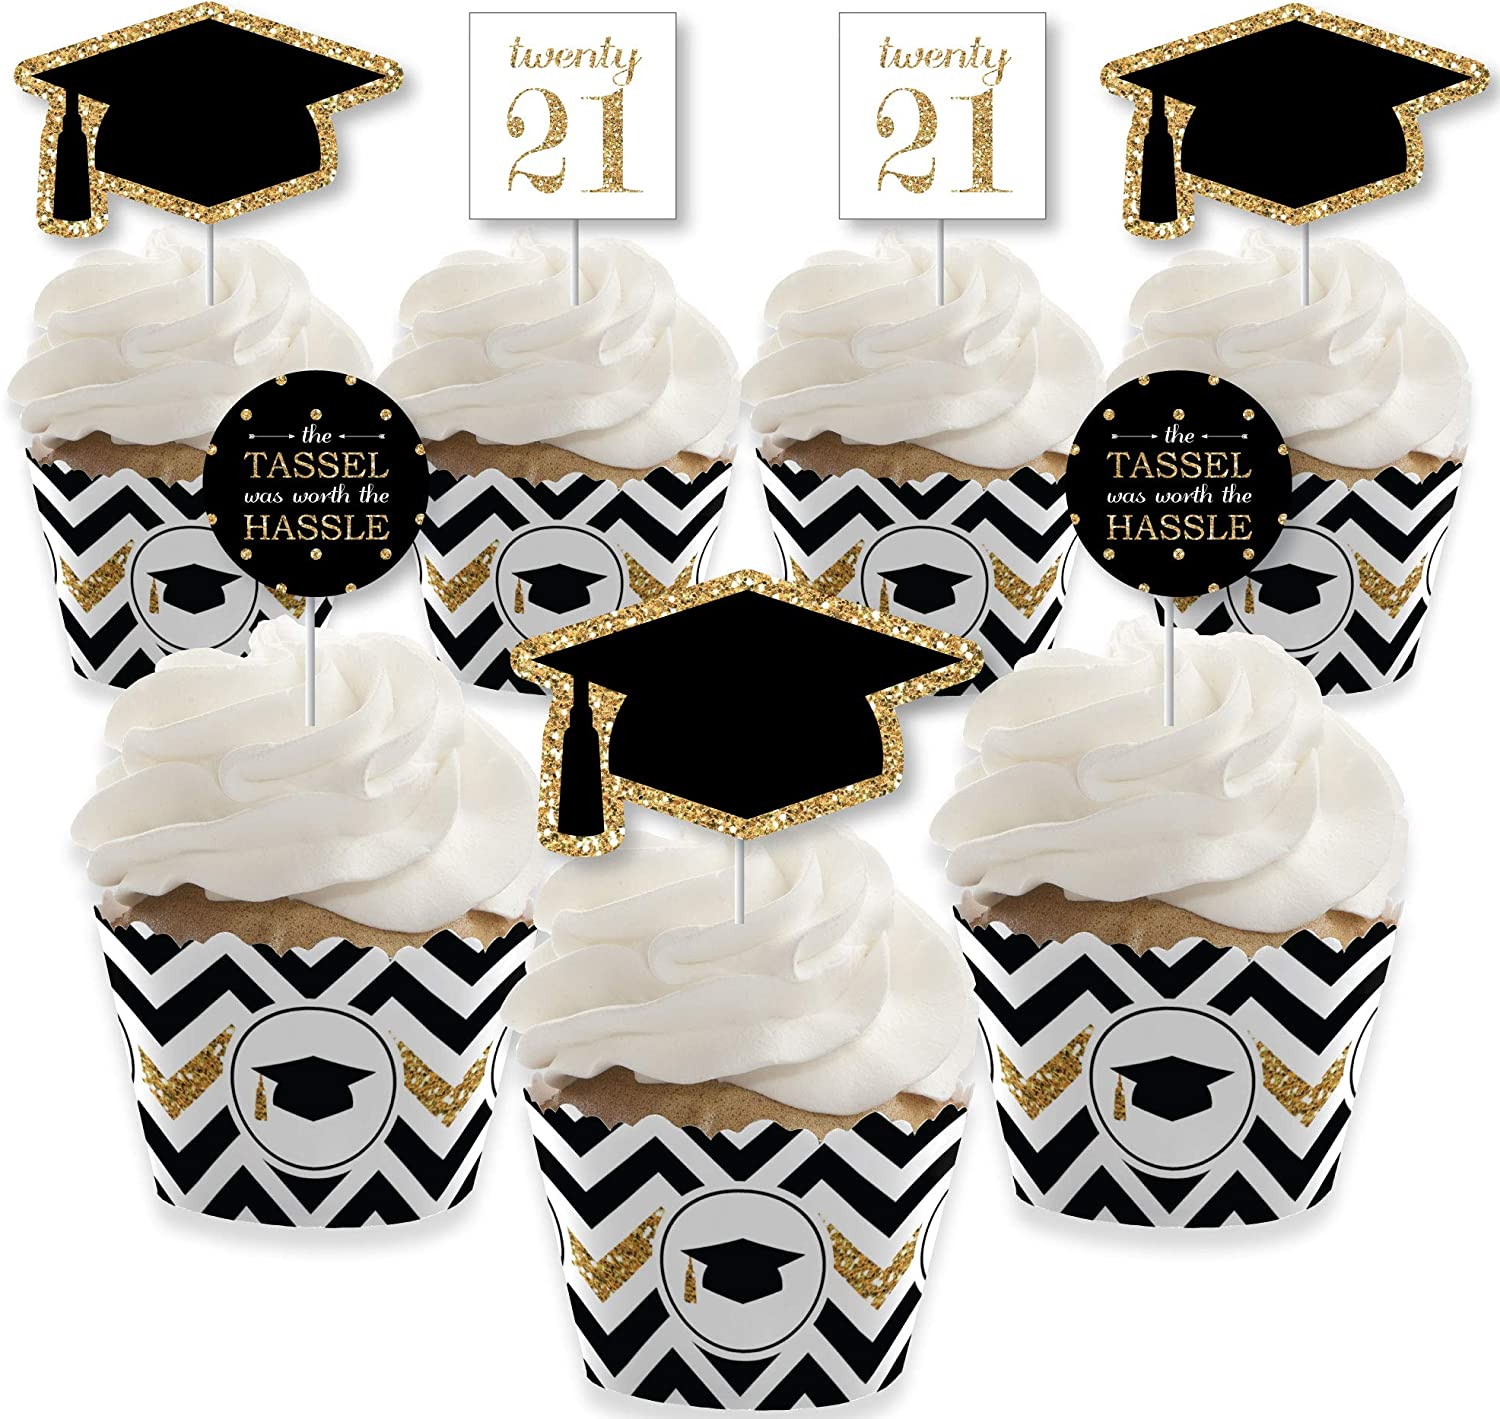 Big Dot of Happiness Gold - Tassel Worth The Hassle - Cupcake Decoration - 2021 Graduation Party Cupcake Wrappers and Treat Picks Kit - Set of 24